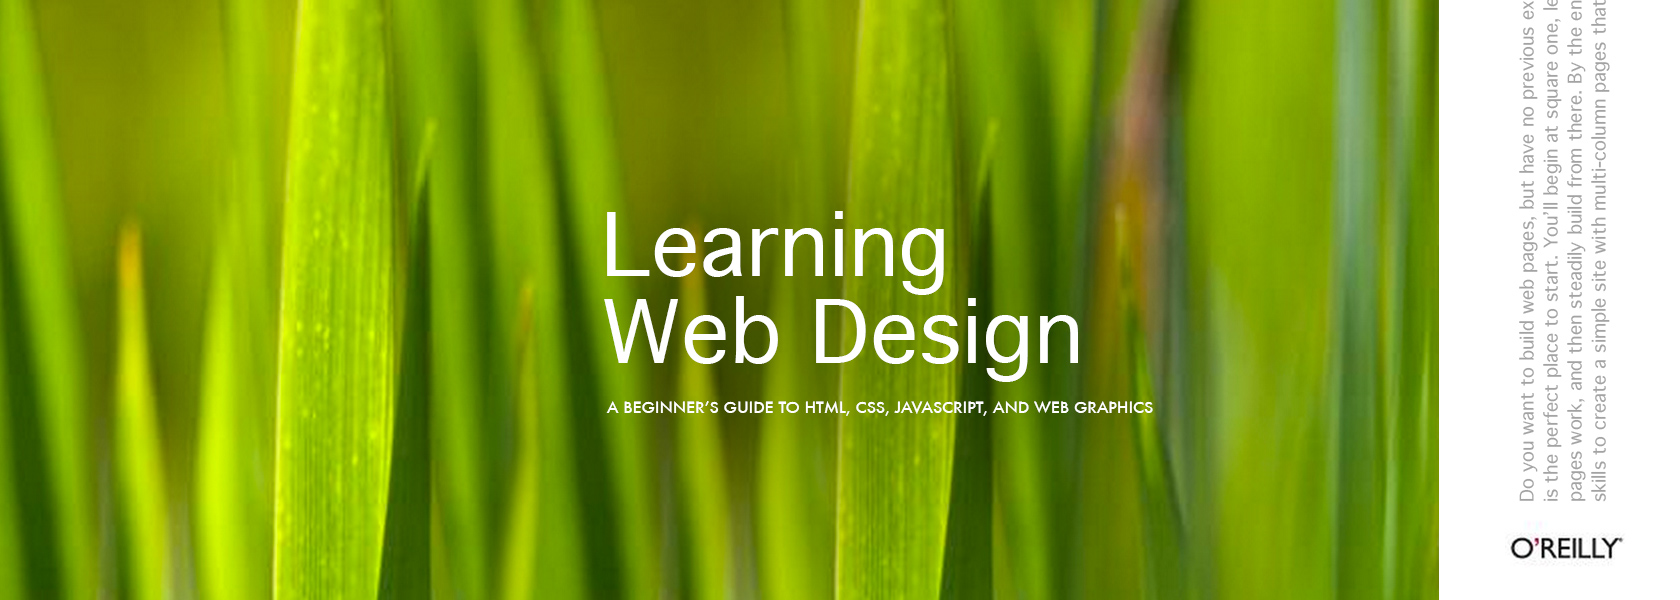 Beginner web design books for learning web design facing web design for How to learn web designing at home free